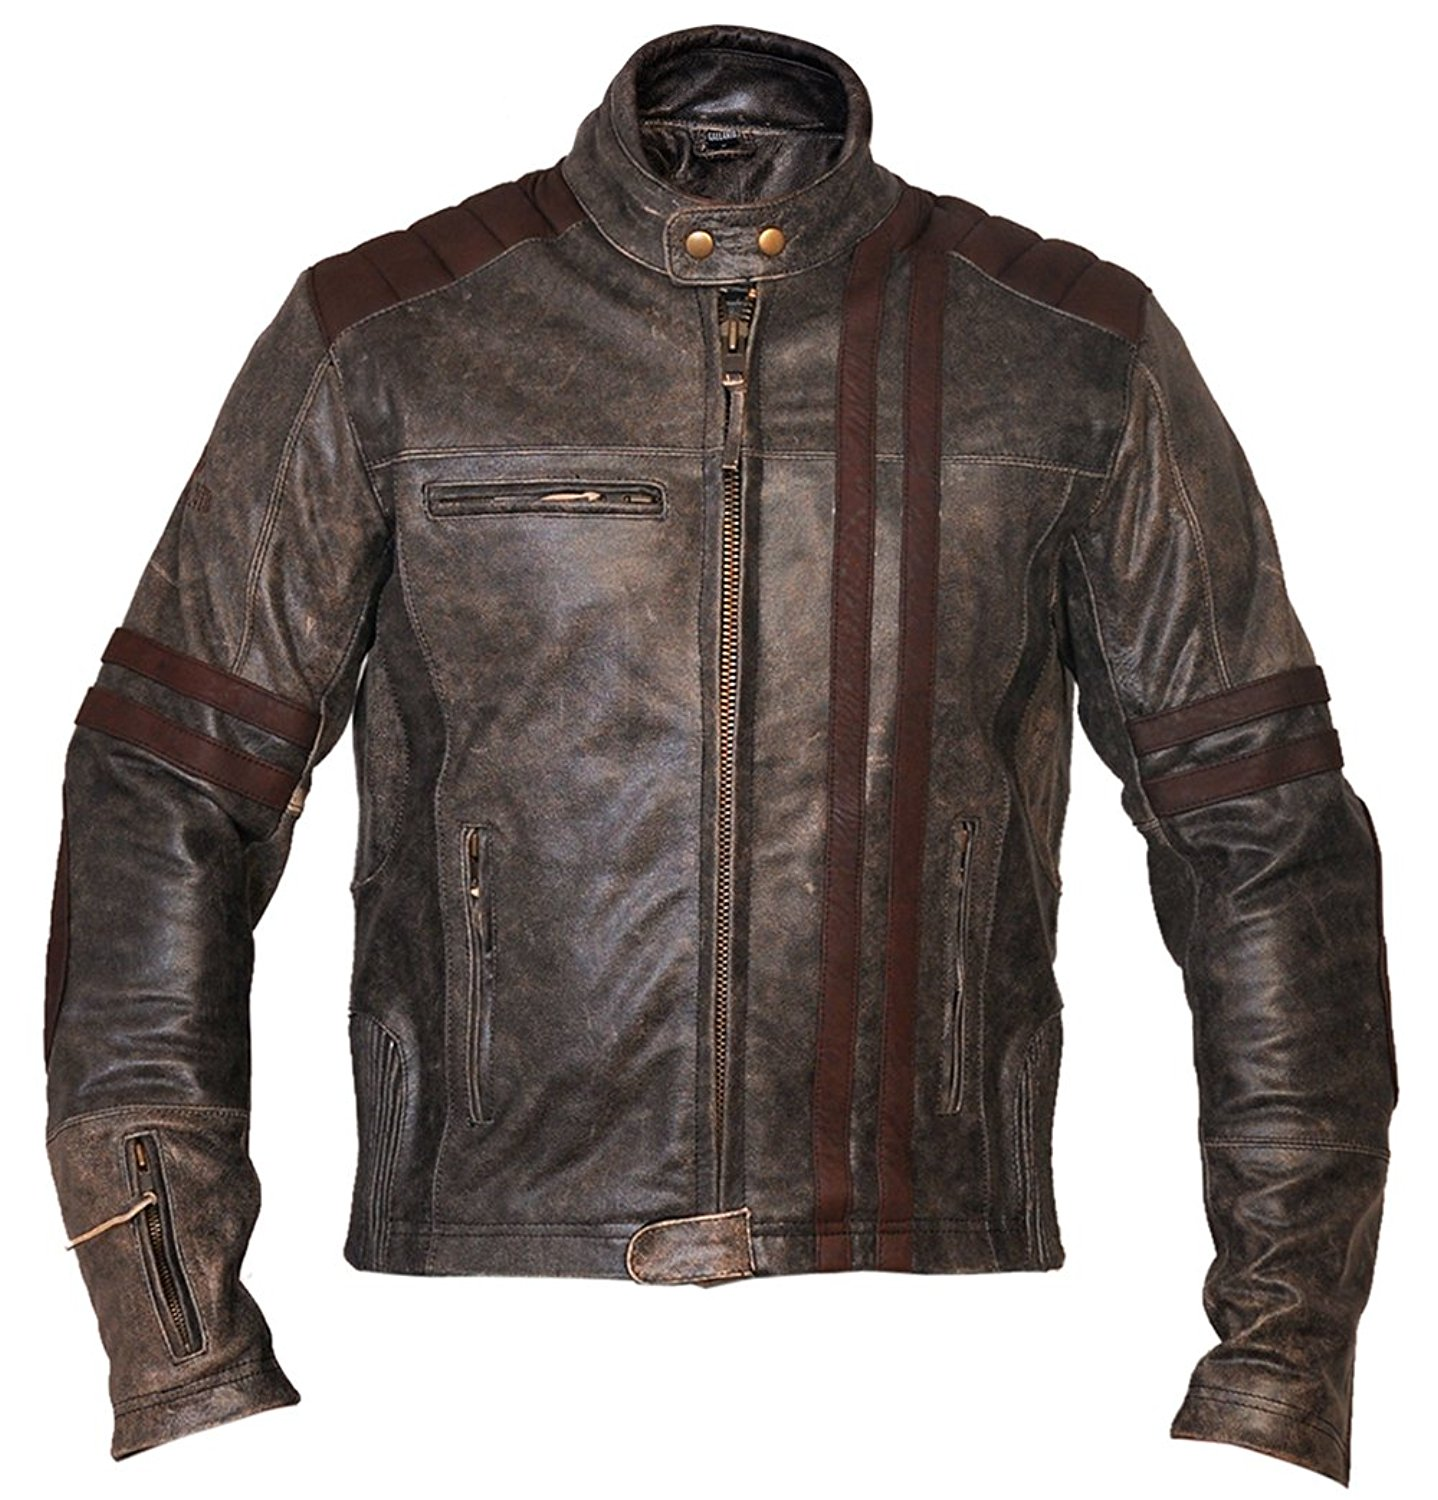 5e0a8b118450 Get Quotations · Thrix Leather Men s Biker Vintage Motorcycle Cafe Racer  Style Distressed Leather Jacket